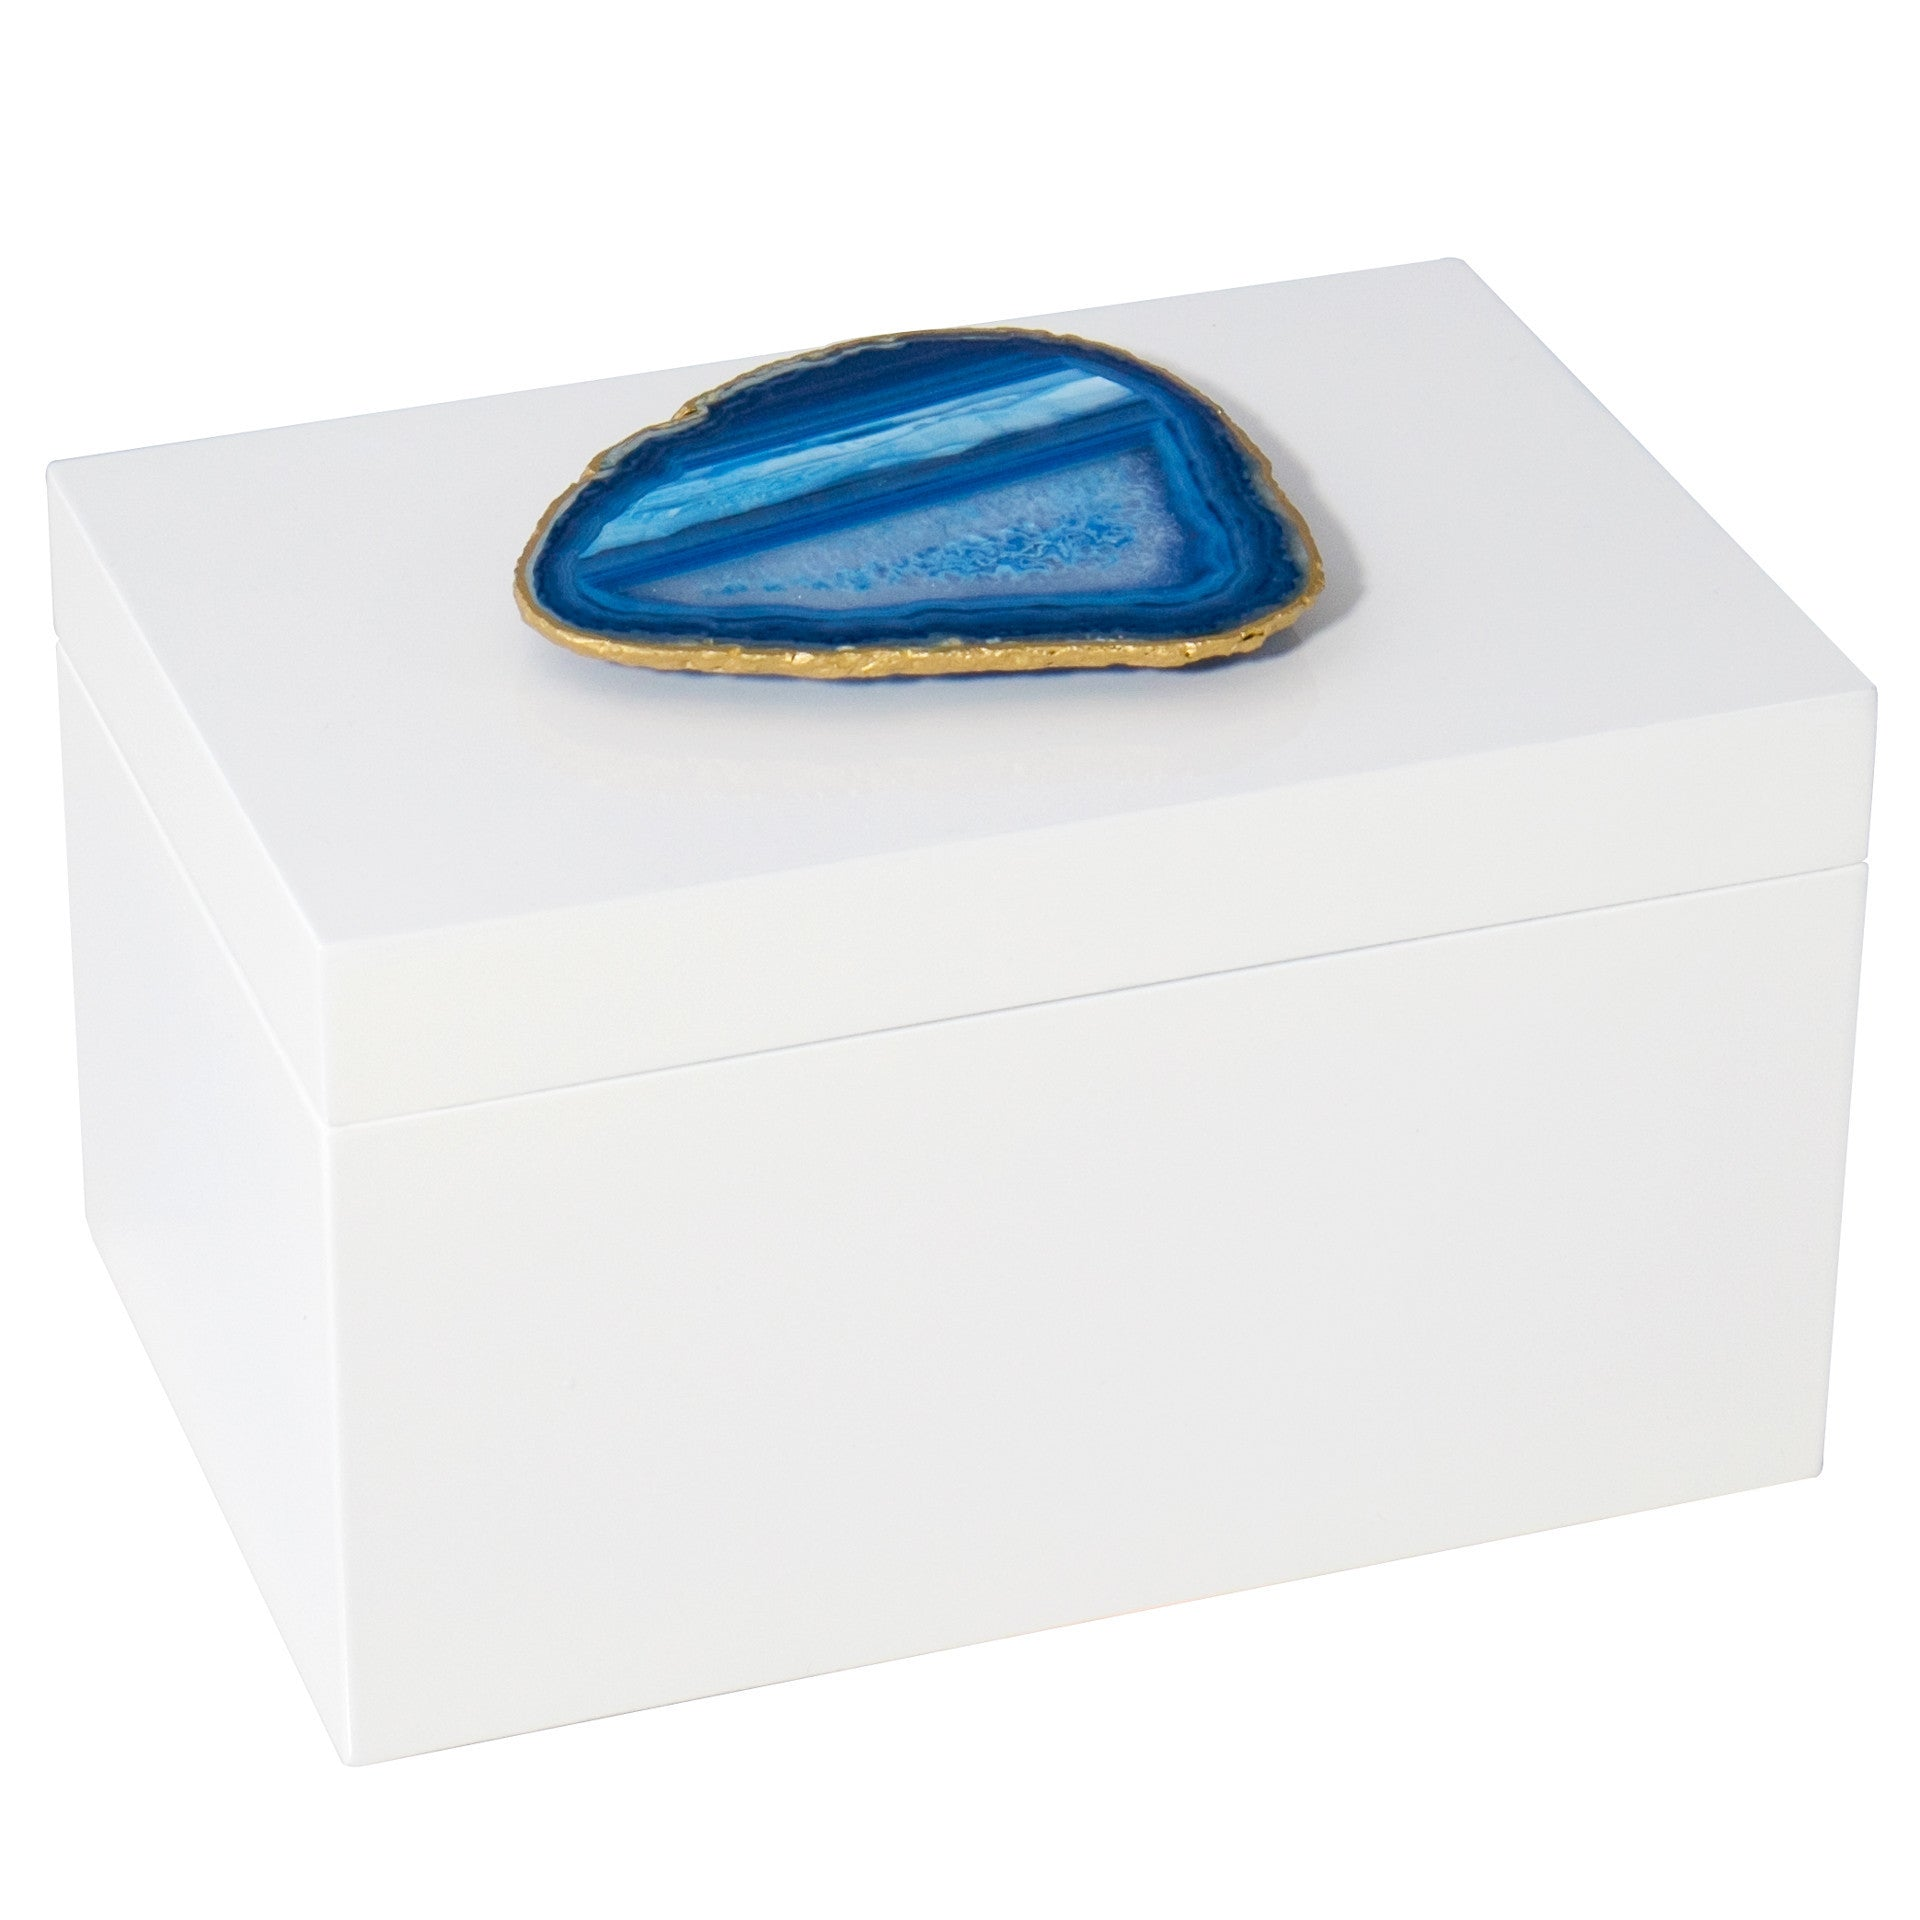 Remote White Lacquer Box with Blue Agate